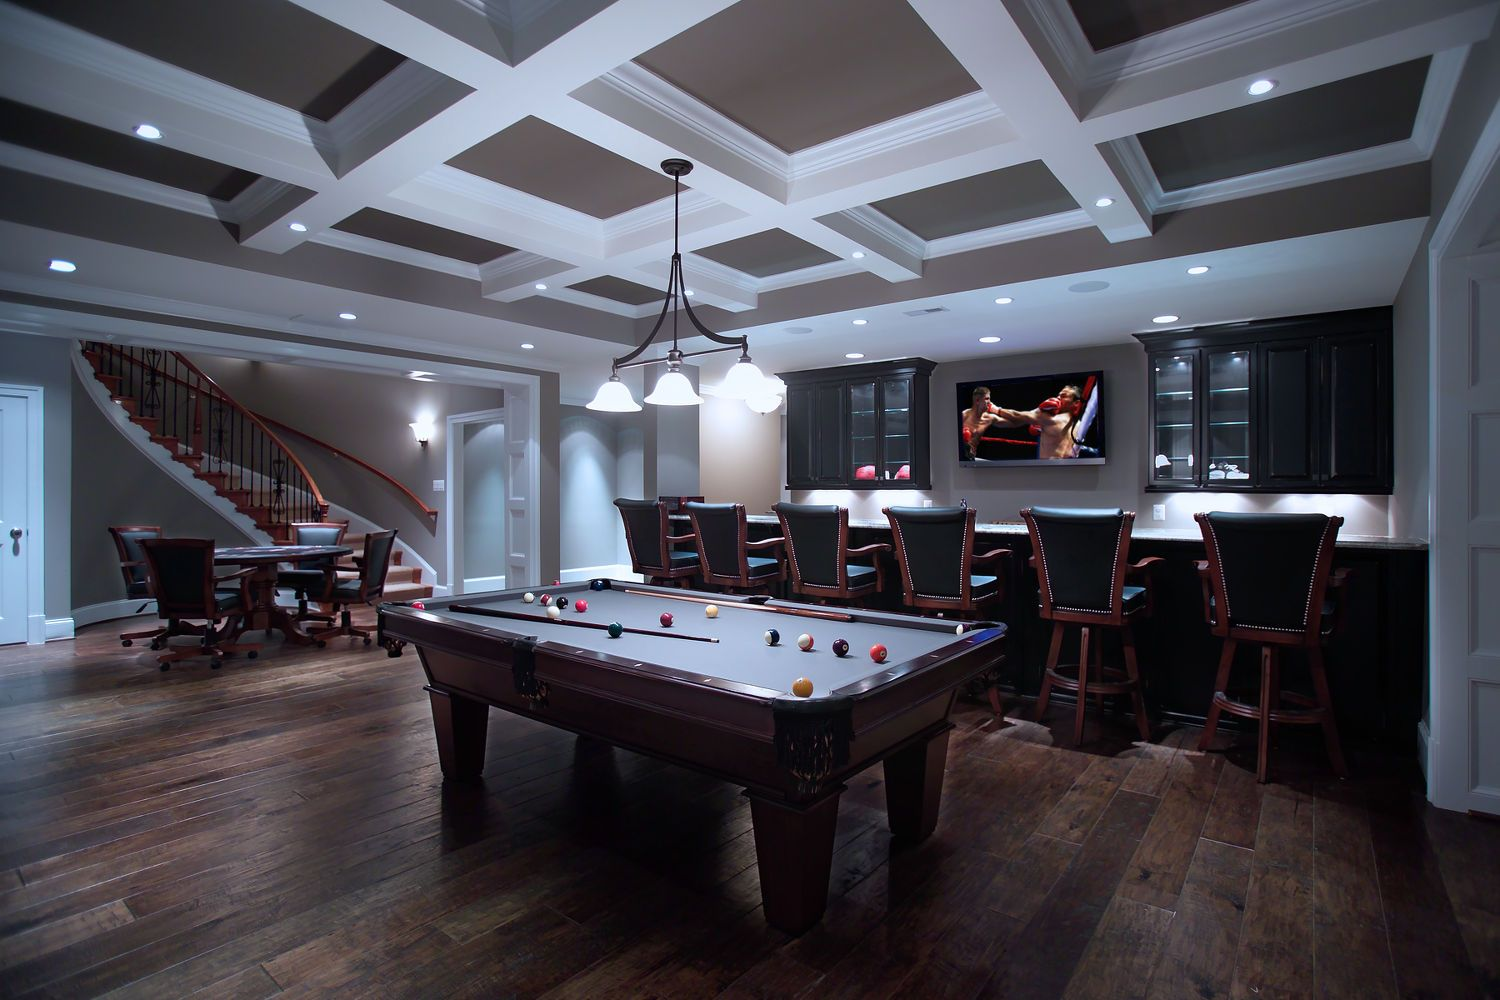 Recently Completed Spa Bath In Large Basement Renovation By Rule4 Building Group Basement Ideas Home Decor Game Room Basement Room Renovation Game Room Bar